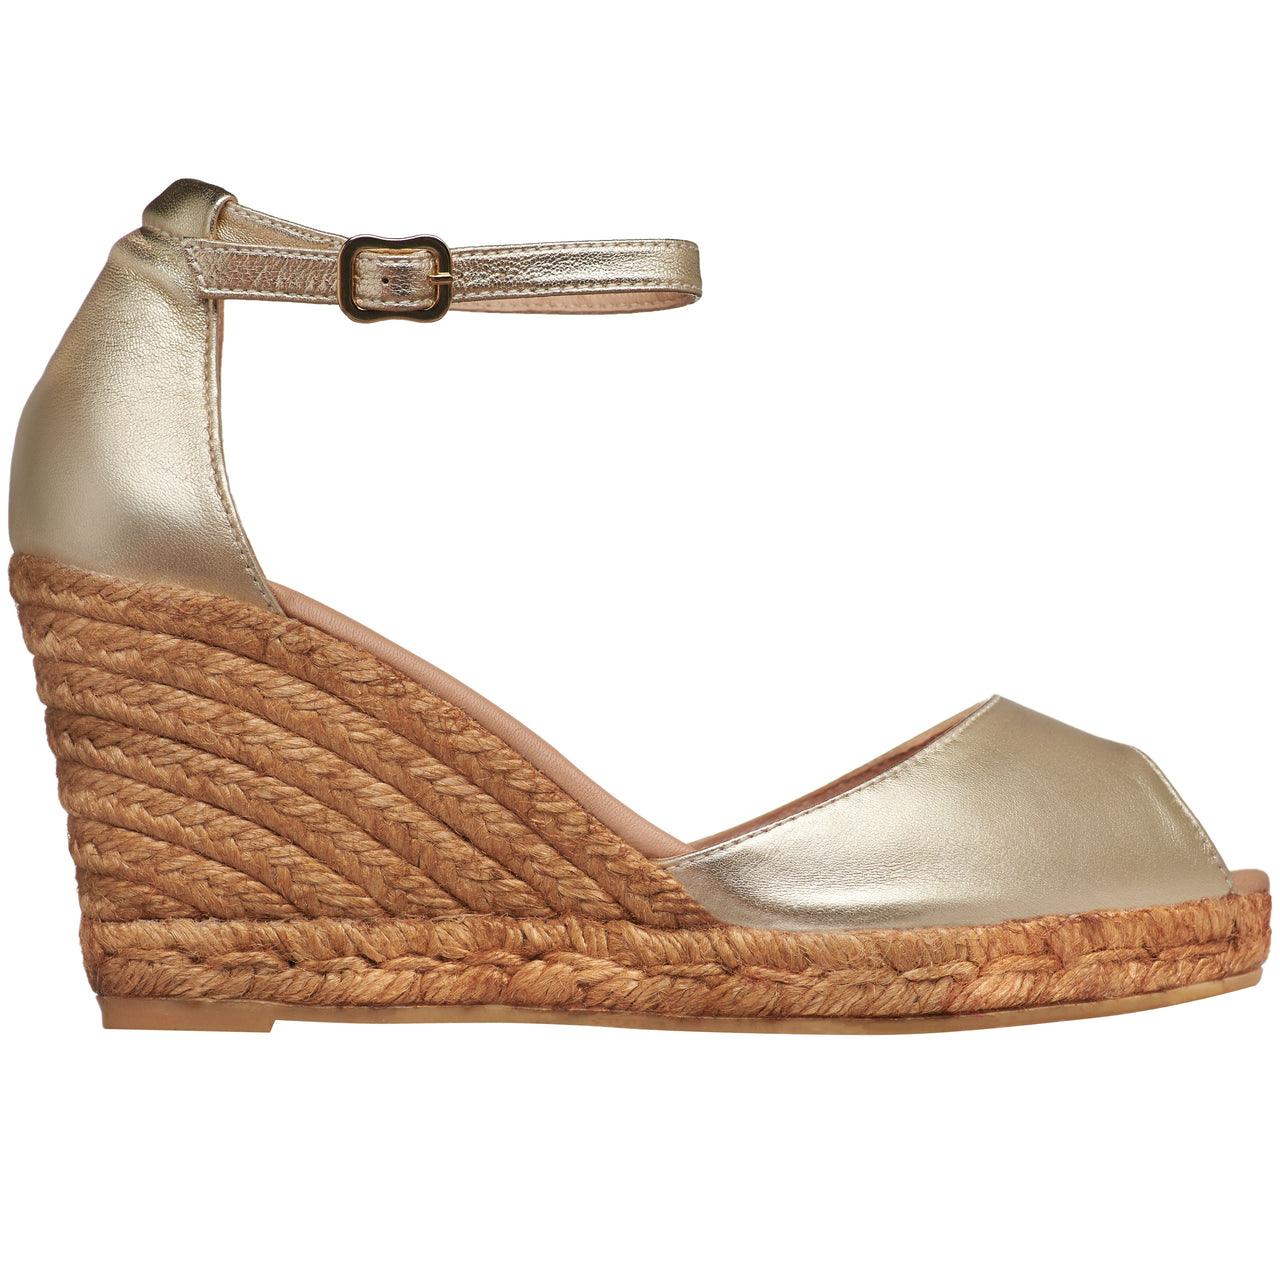 CADAQUES Gold espadrilles - Badt and Co - singapore